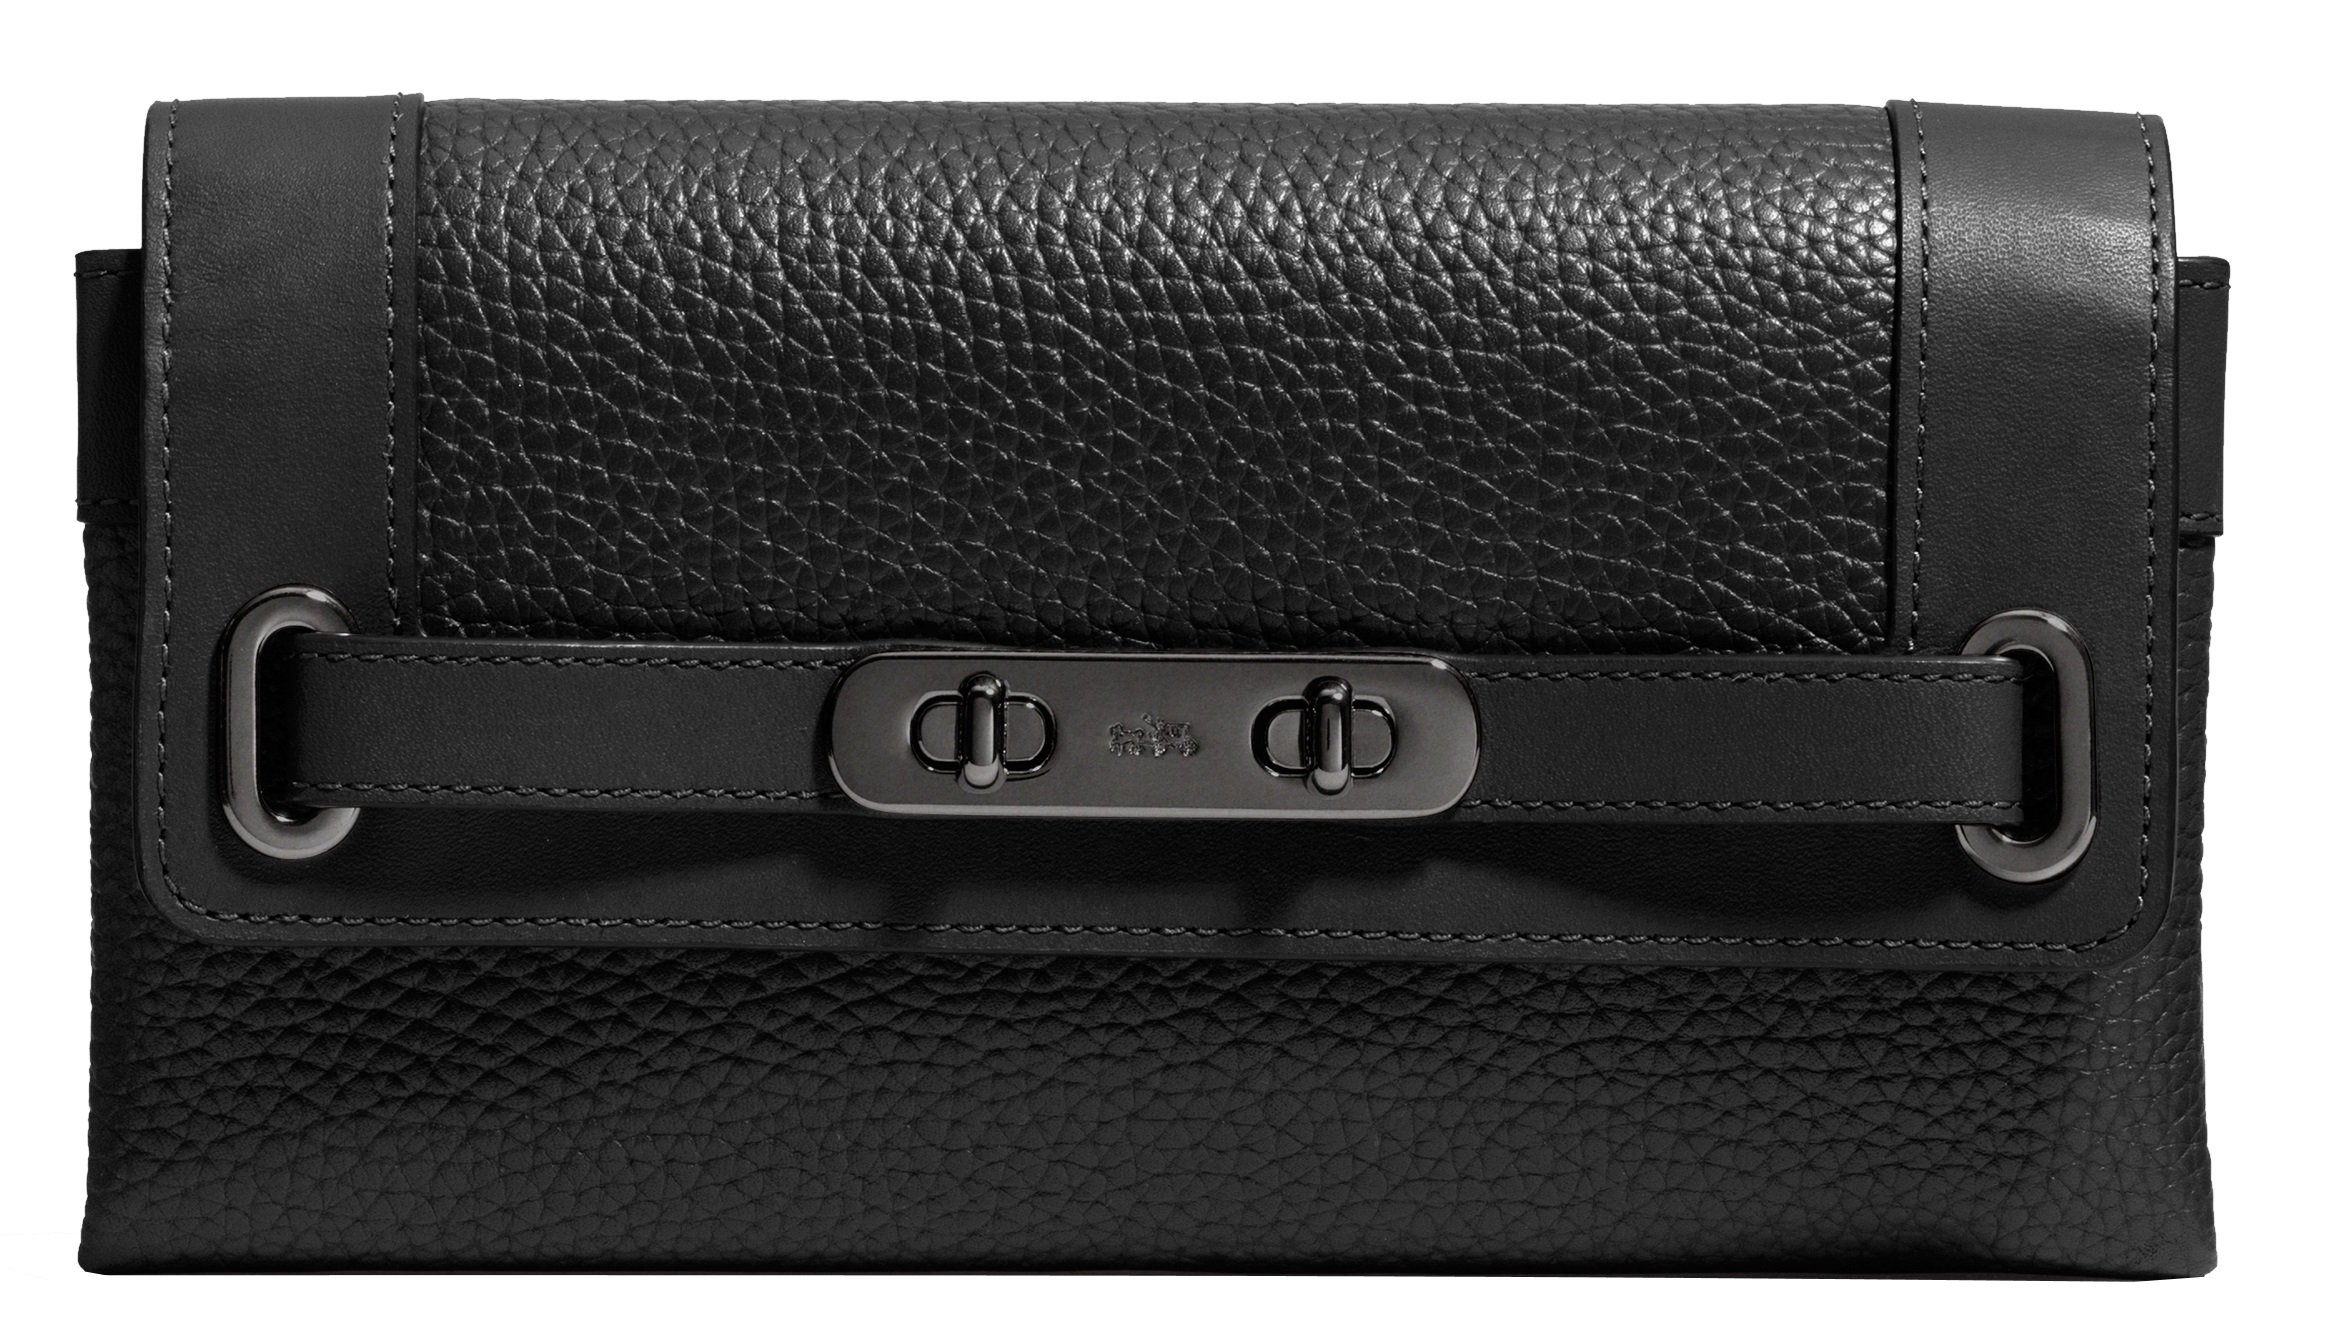 Coach Pebble Leather Swagger Wallet in BlackF53028 MW/BK by Coach (Image #1)